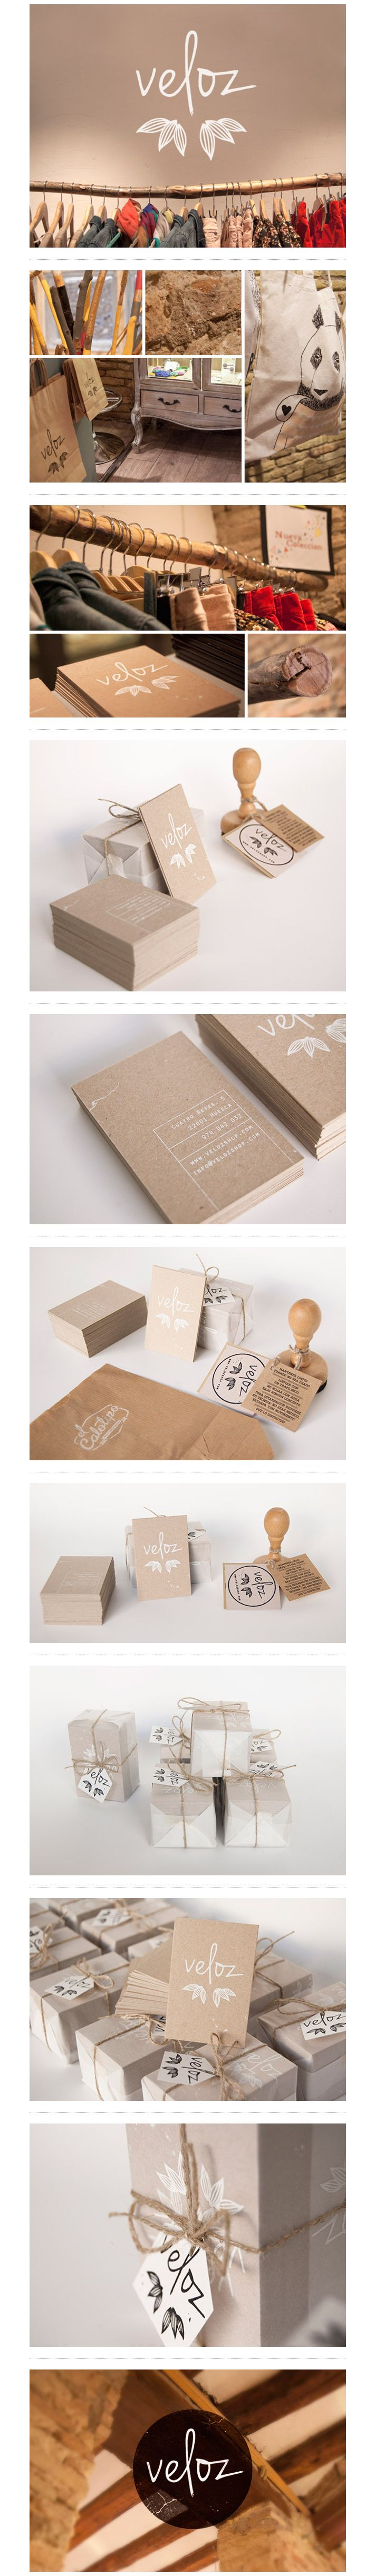 Veloz #identity #packaging #branding #marketing PD